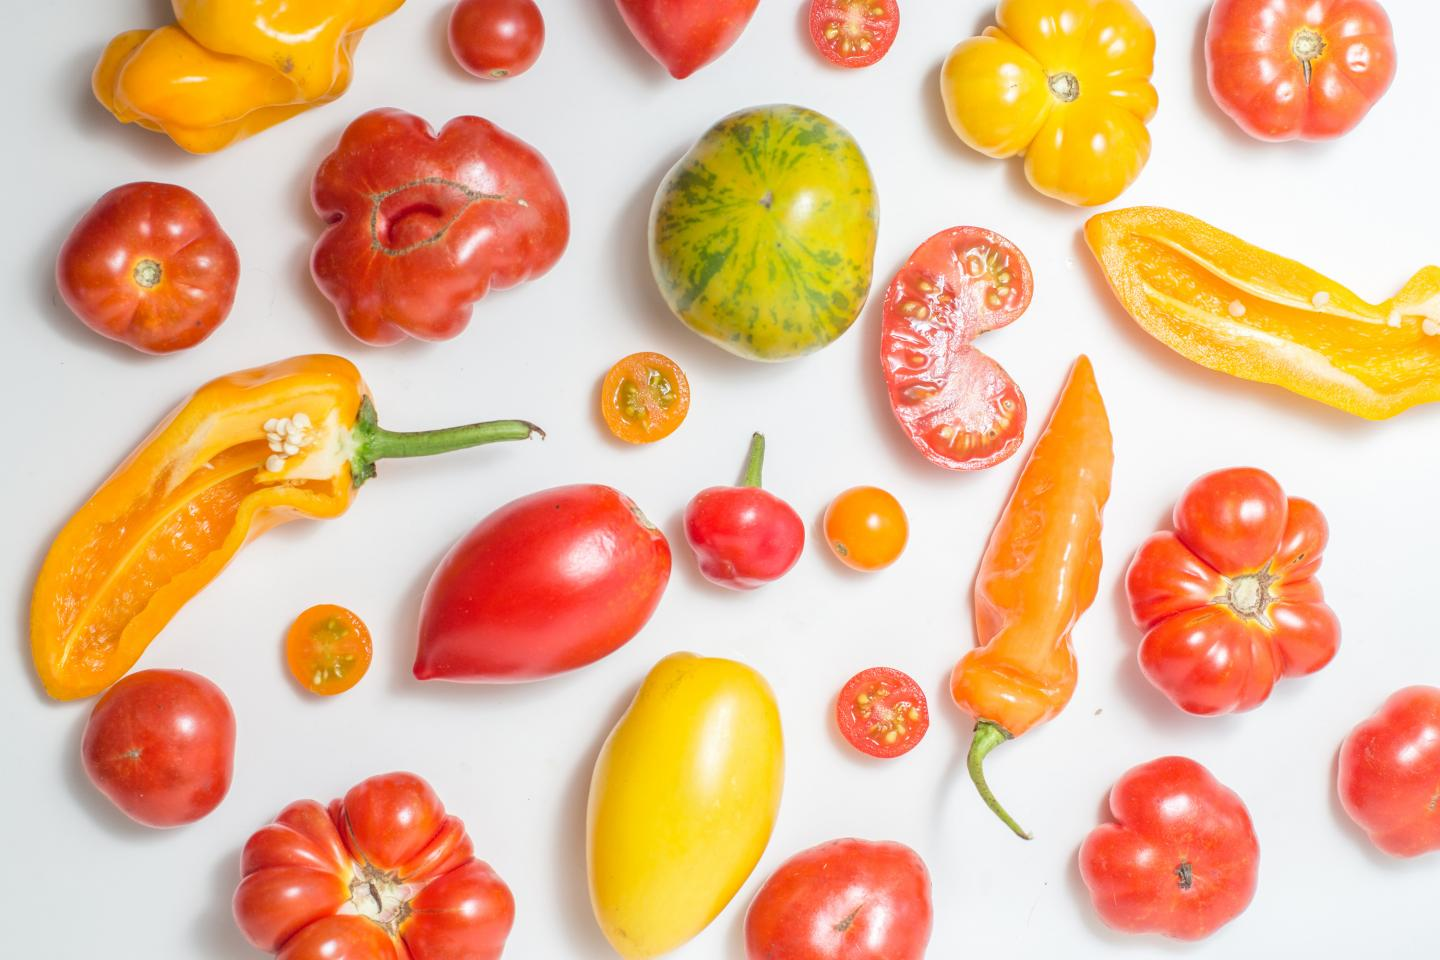 How Citizen Science Can Shed Light On Agriculture, Food Research